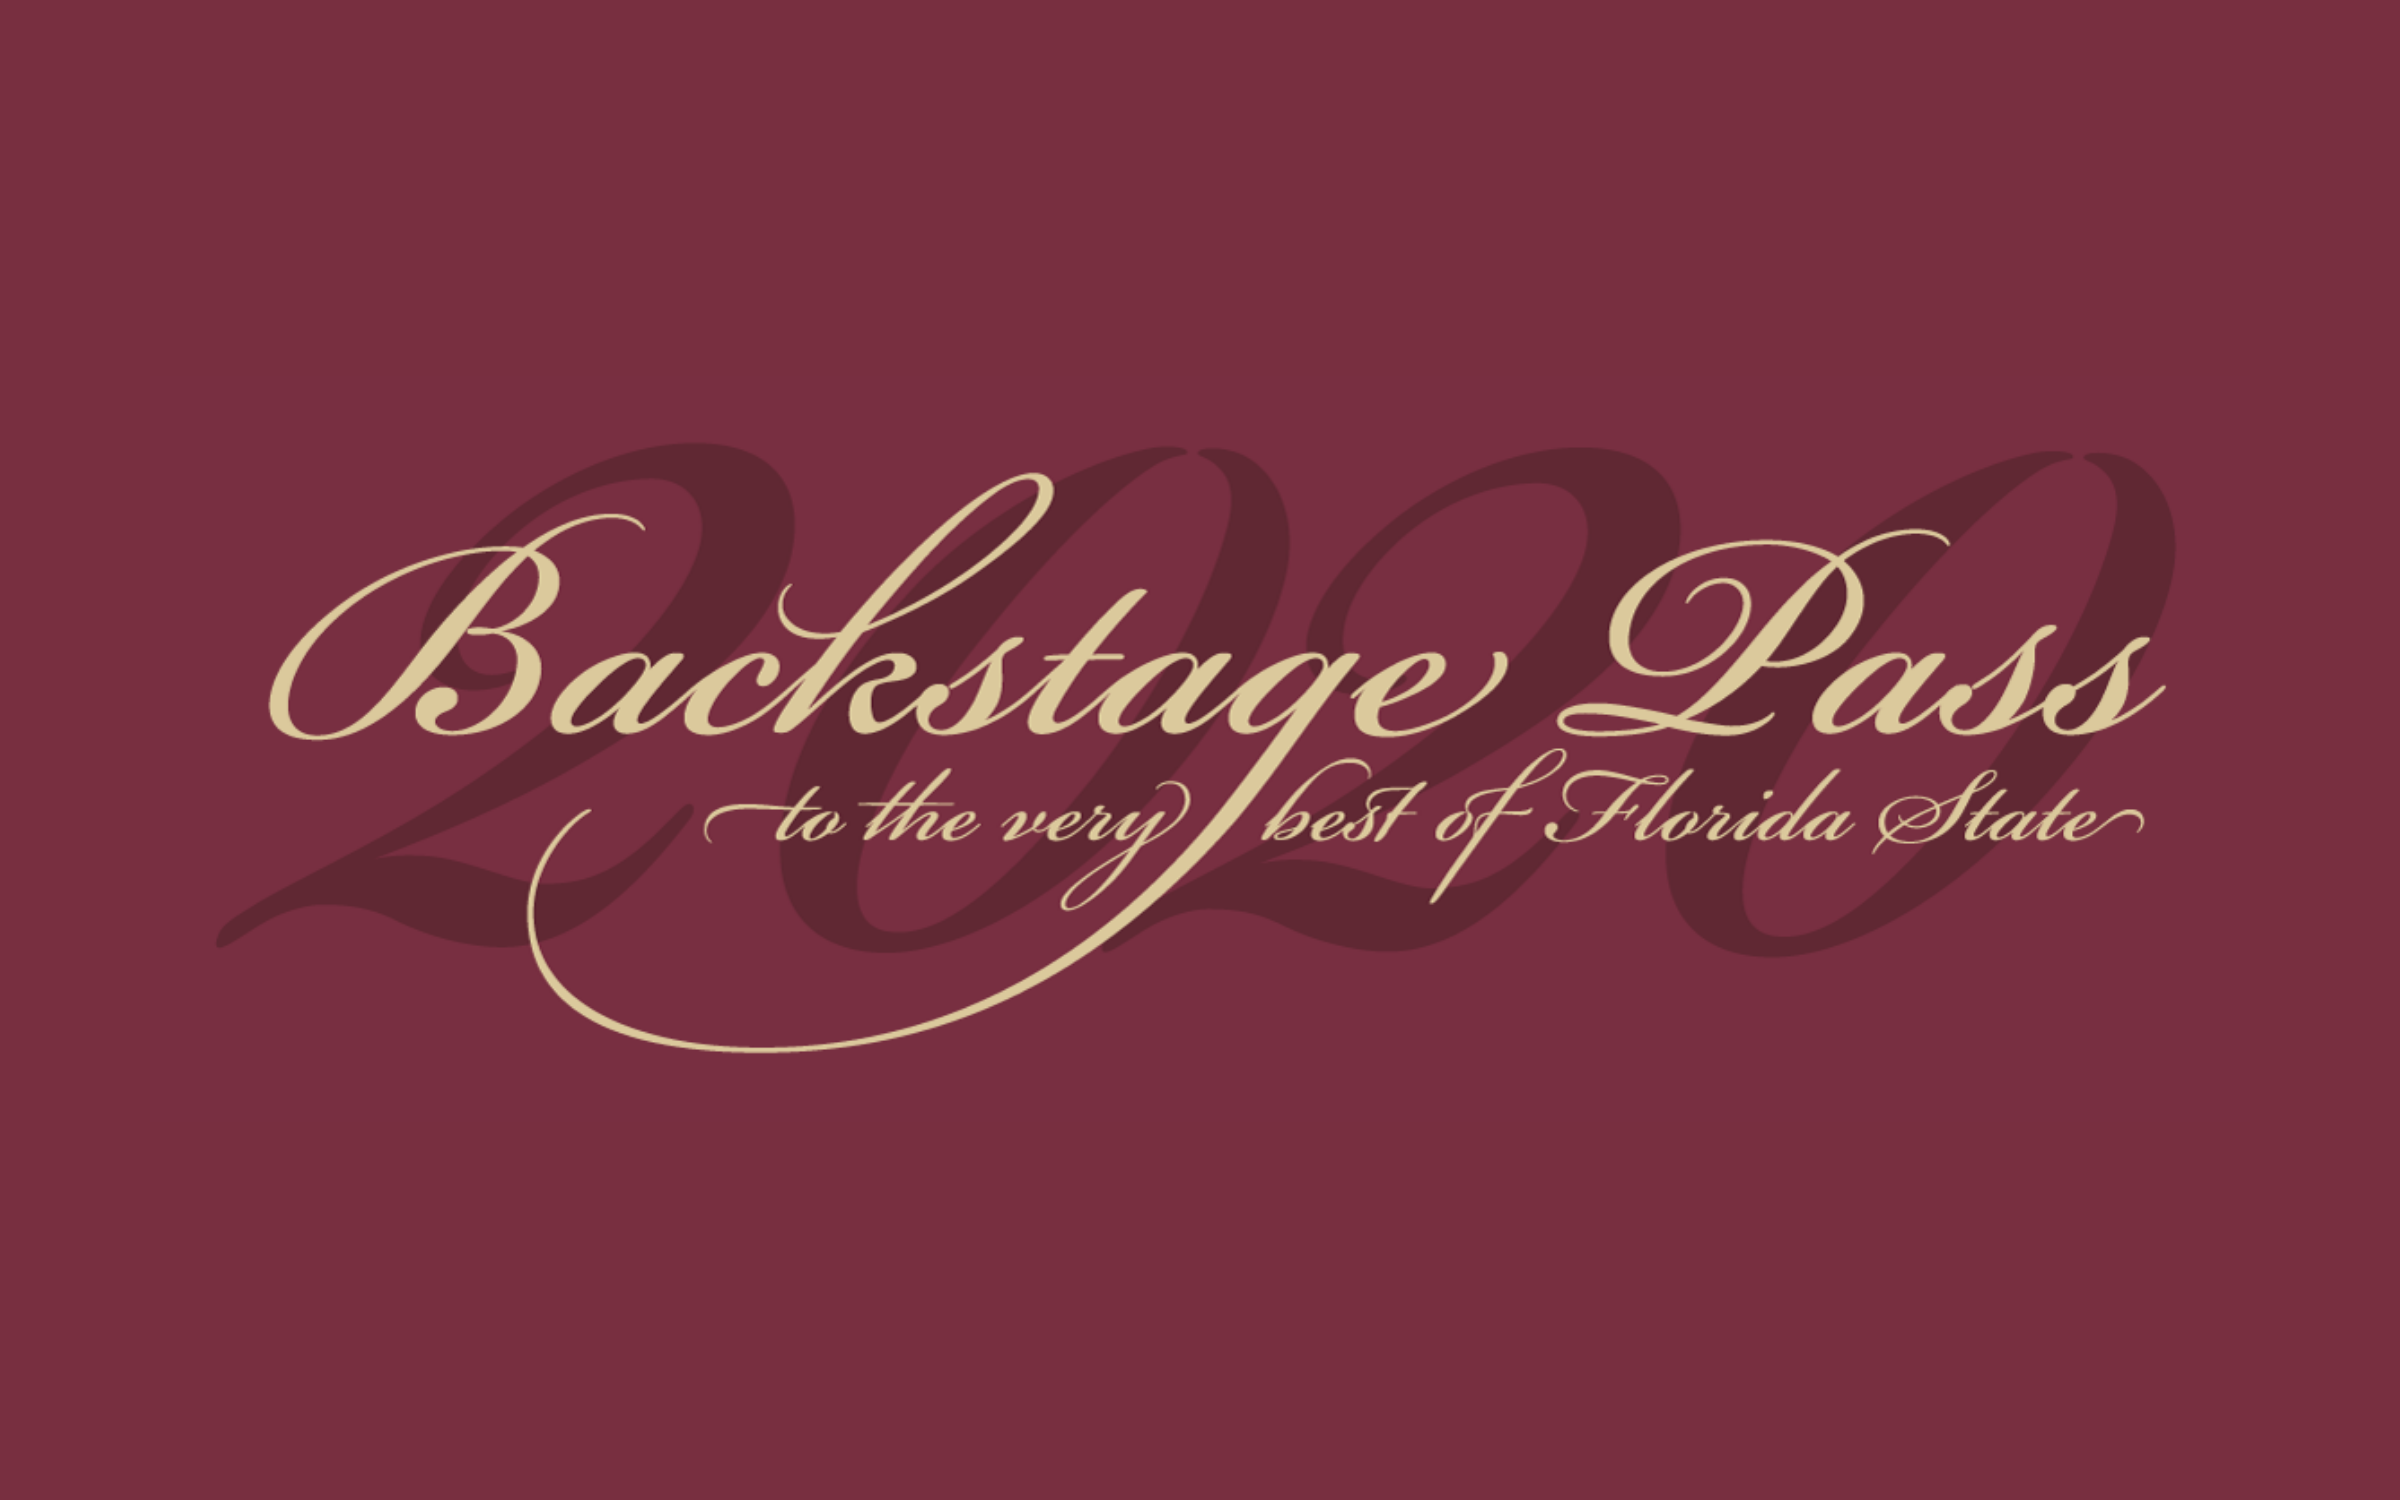 Backstage Pass to the Very Best of Florida State 2020